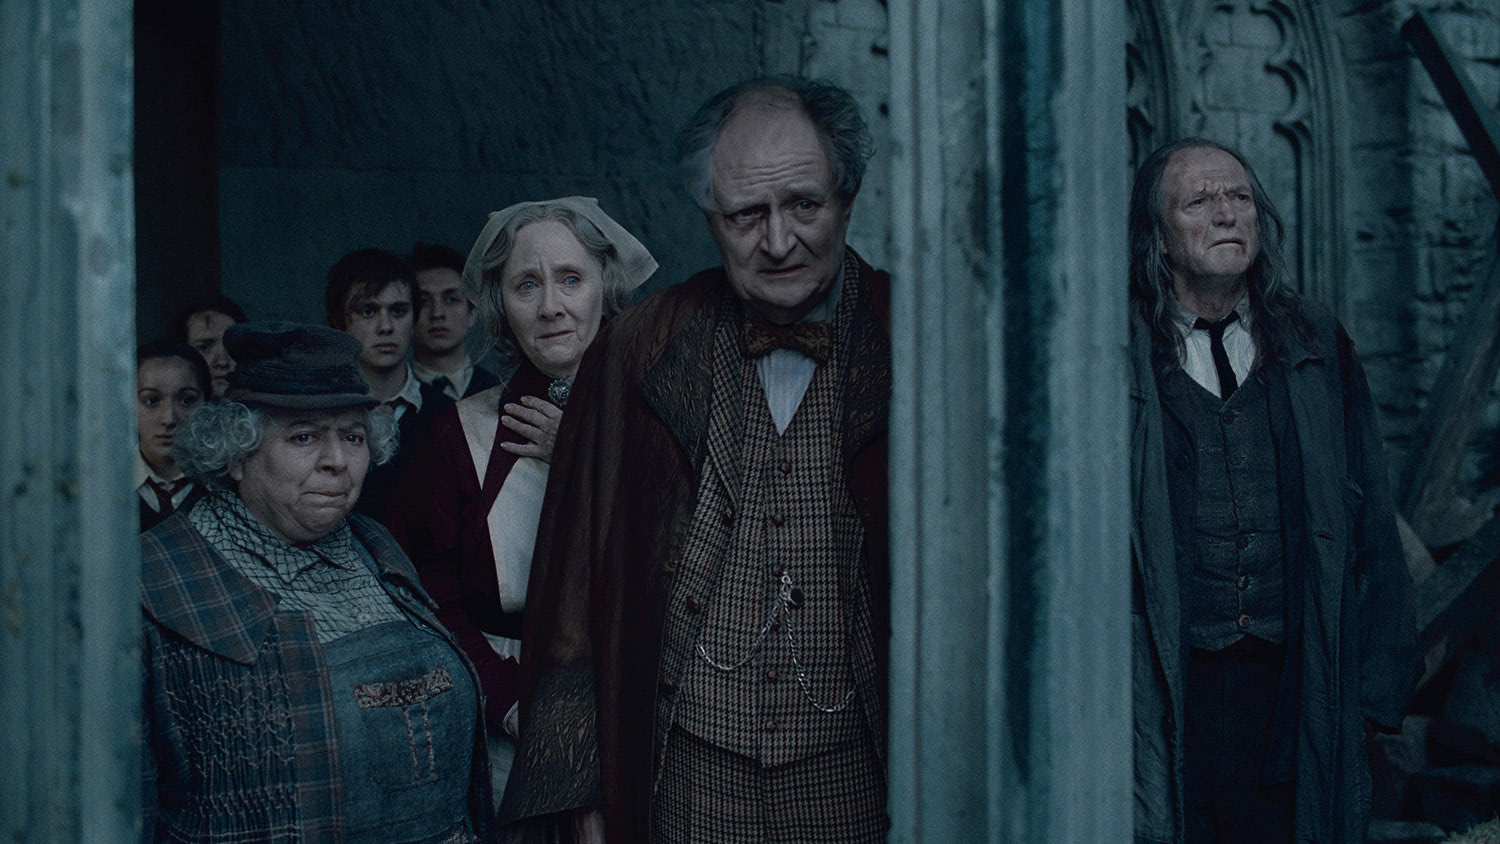 Slughorn watches the destruction